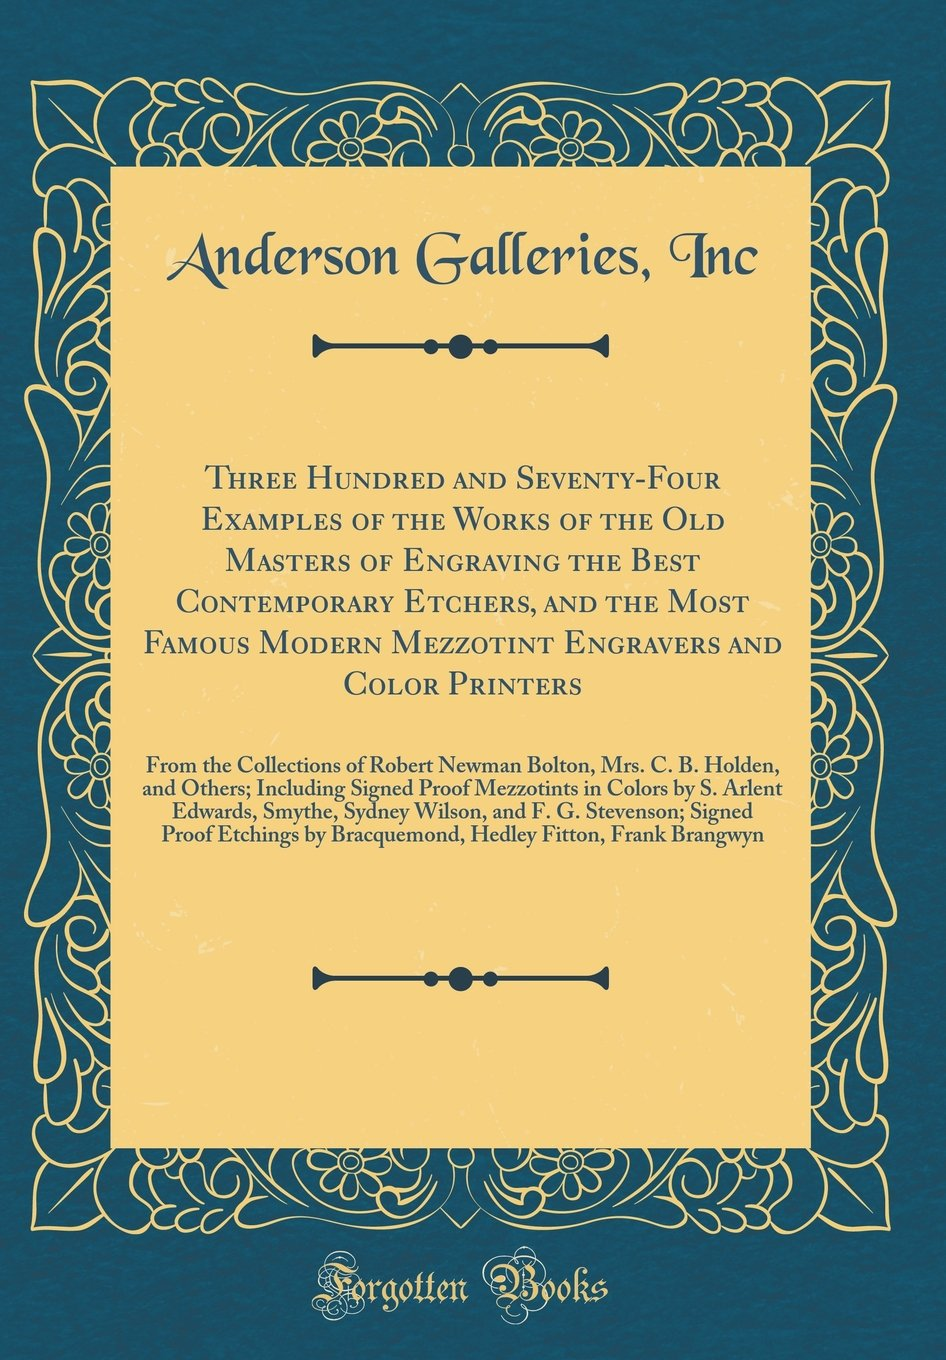 Three Hundred and Seventy-Four Examples of the Works of the Old Masters of Engraving the Best Contemporary Etchers, and the Most Famous Modern Newman Bolton, Mrs. C. B. Holden, and Oth pdf